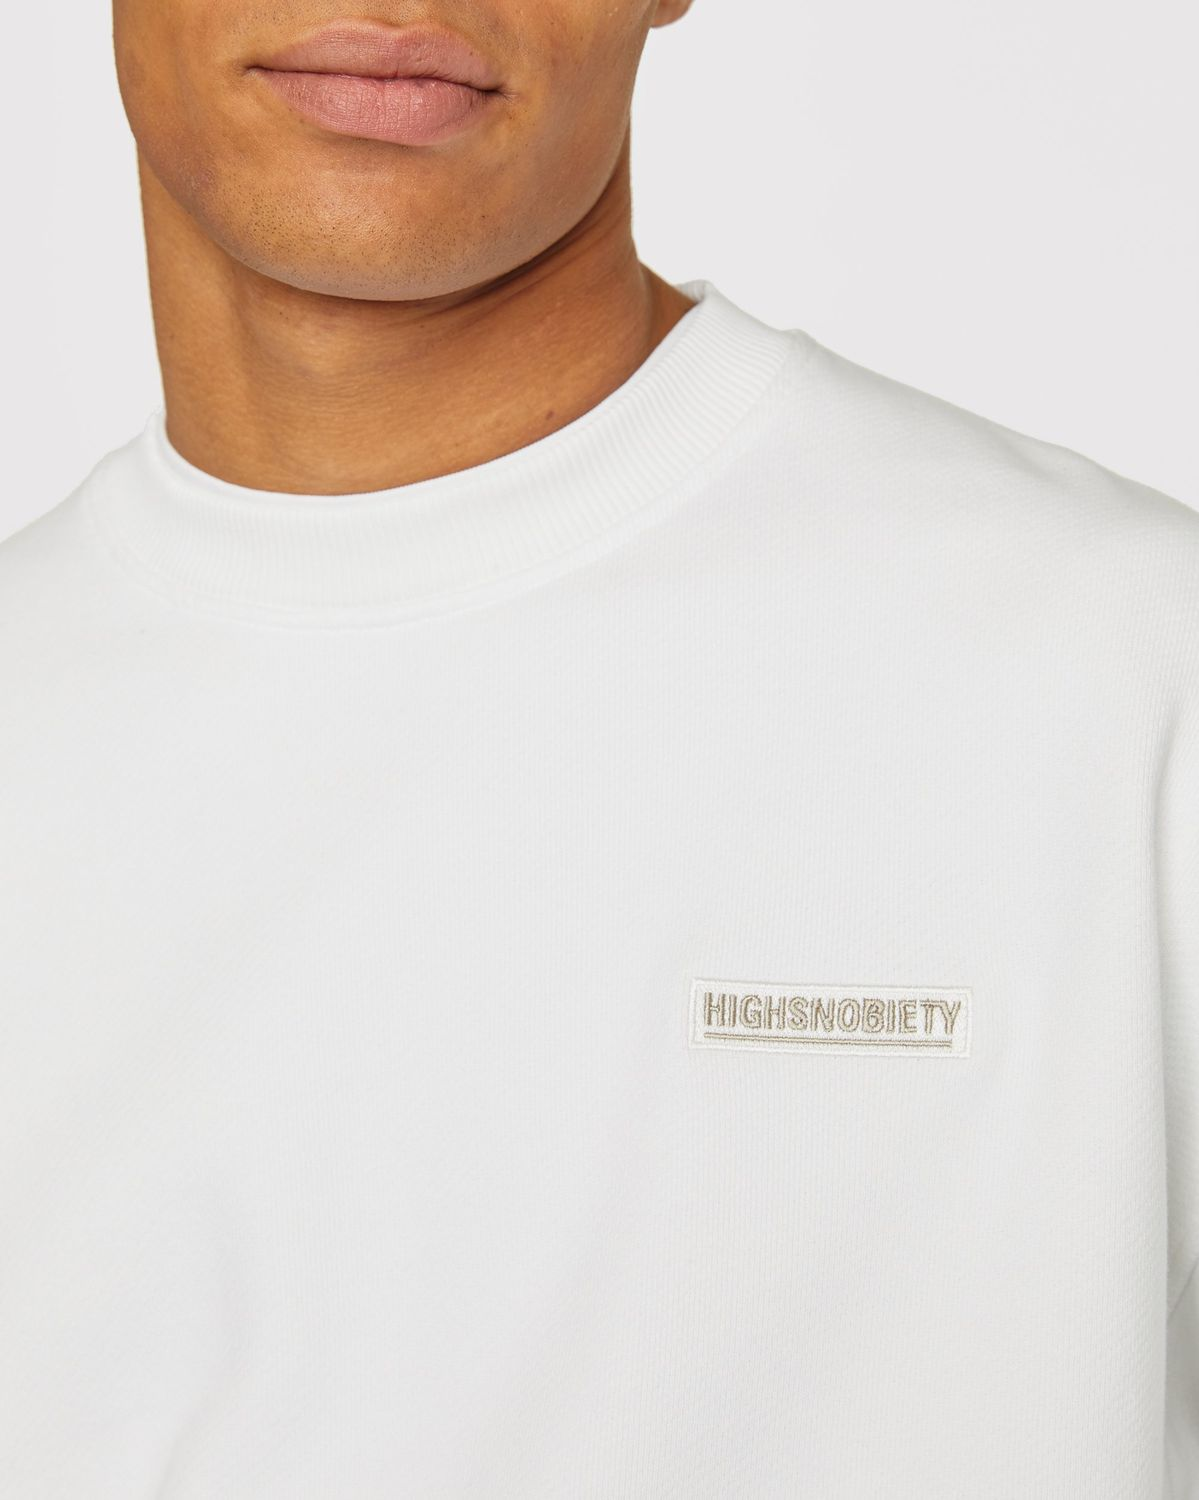 Highsnobiety Staples — Sweatshirt White - Image 5